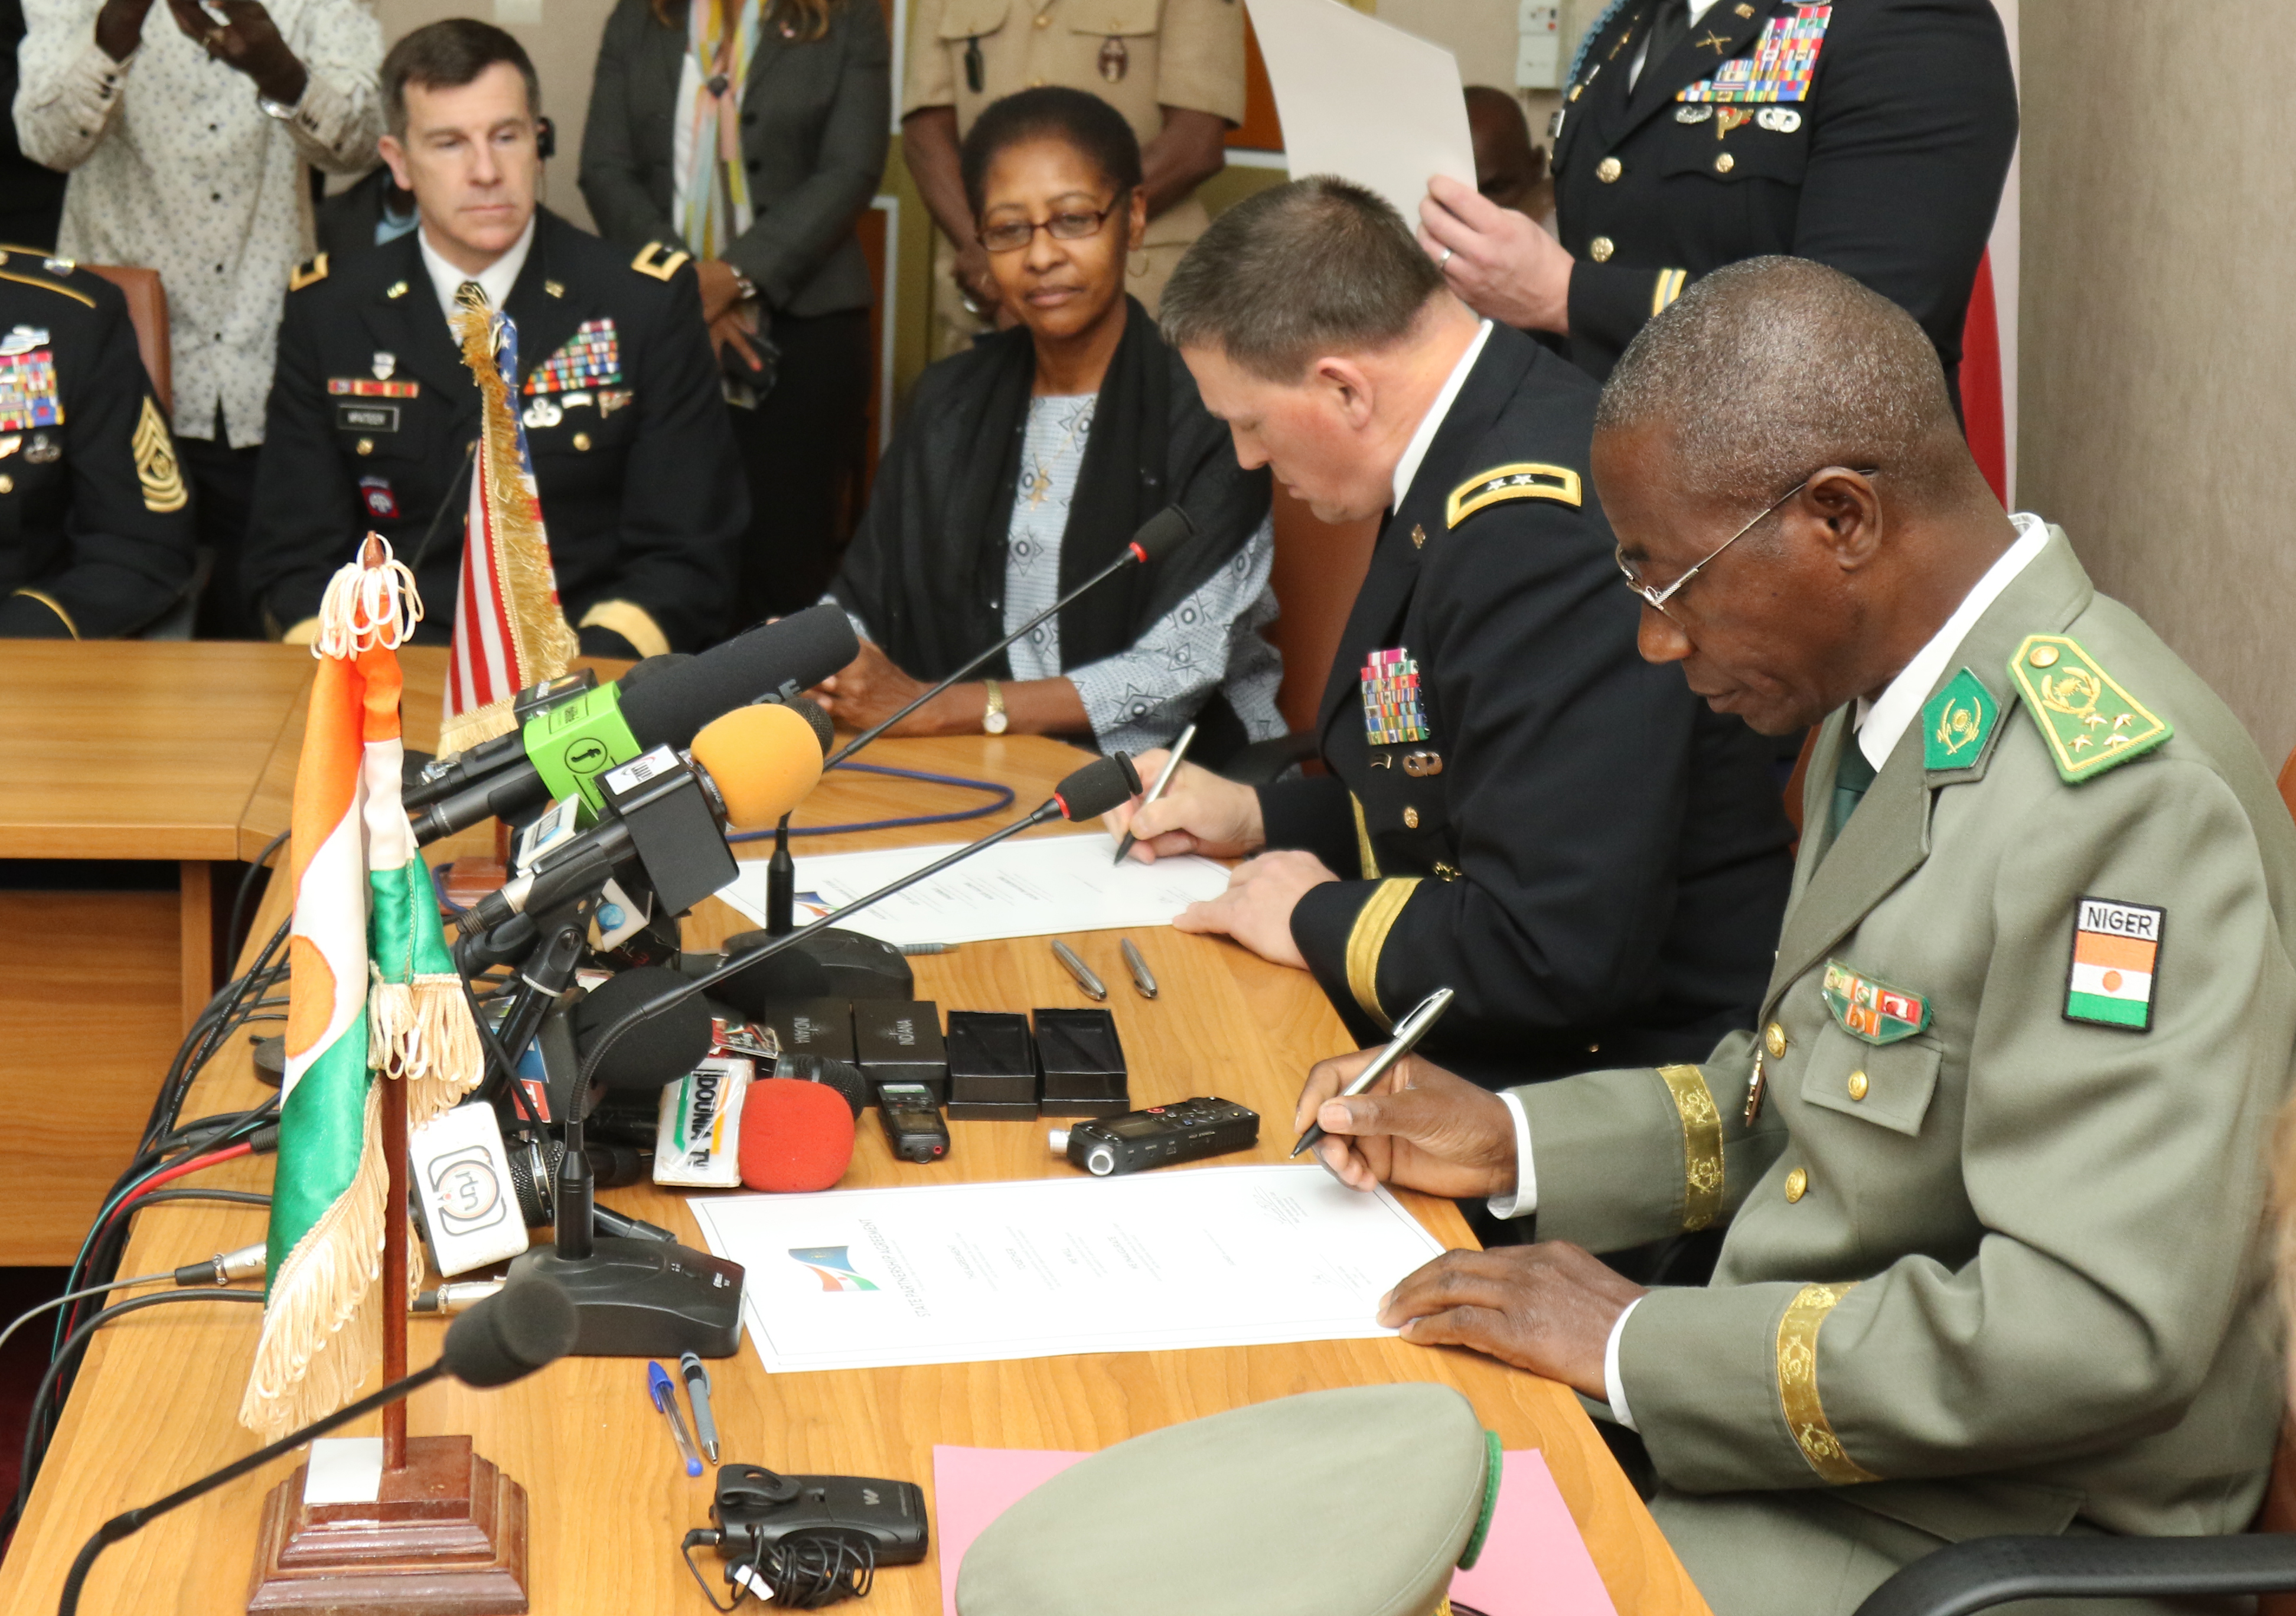 Niamey, Niger - Maj. Gen. Courtney P. Carr, the Adjutant General of Indiana, and Gen. Seyni Garba, Joint Chief of Staff of the Niger Armed Forces, sign a ceremonial partnership agreement during the State Partnership Program ceremony in Niamey, Niger. (Photo by Nate Herring, U.S. AFRICOM Public Affairs/Released)